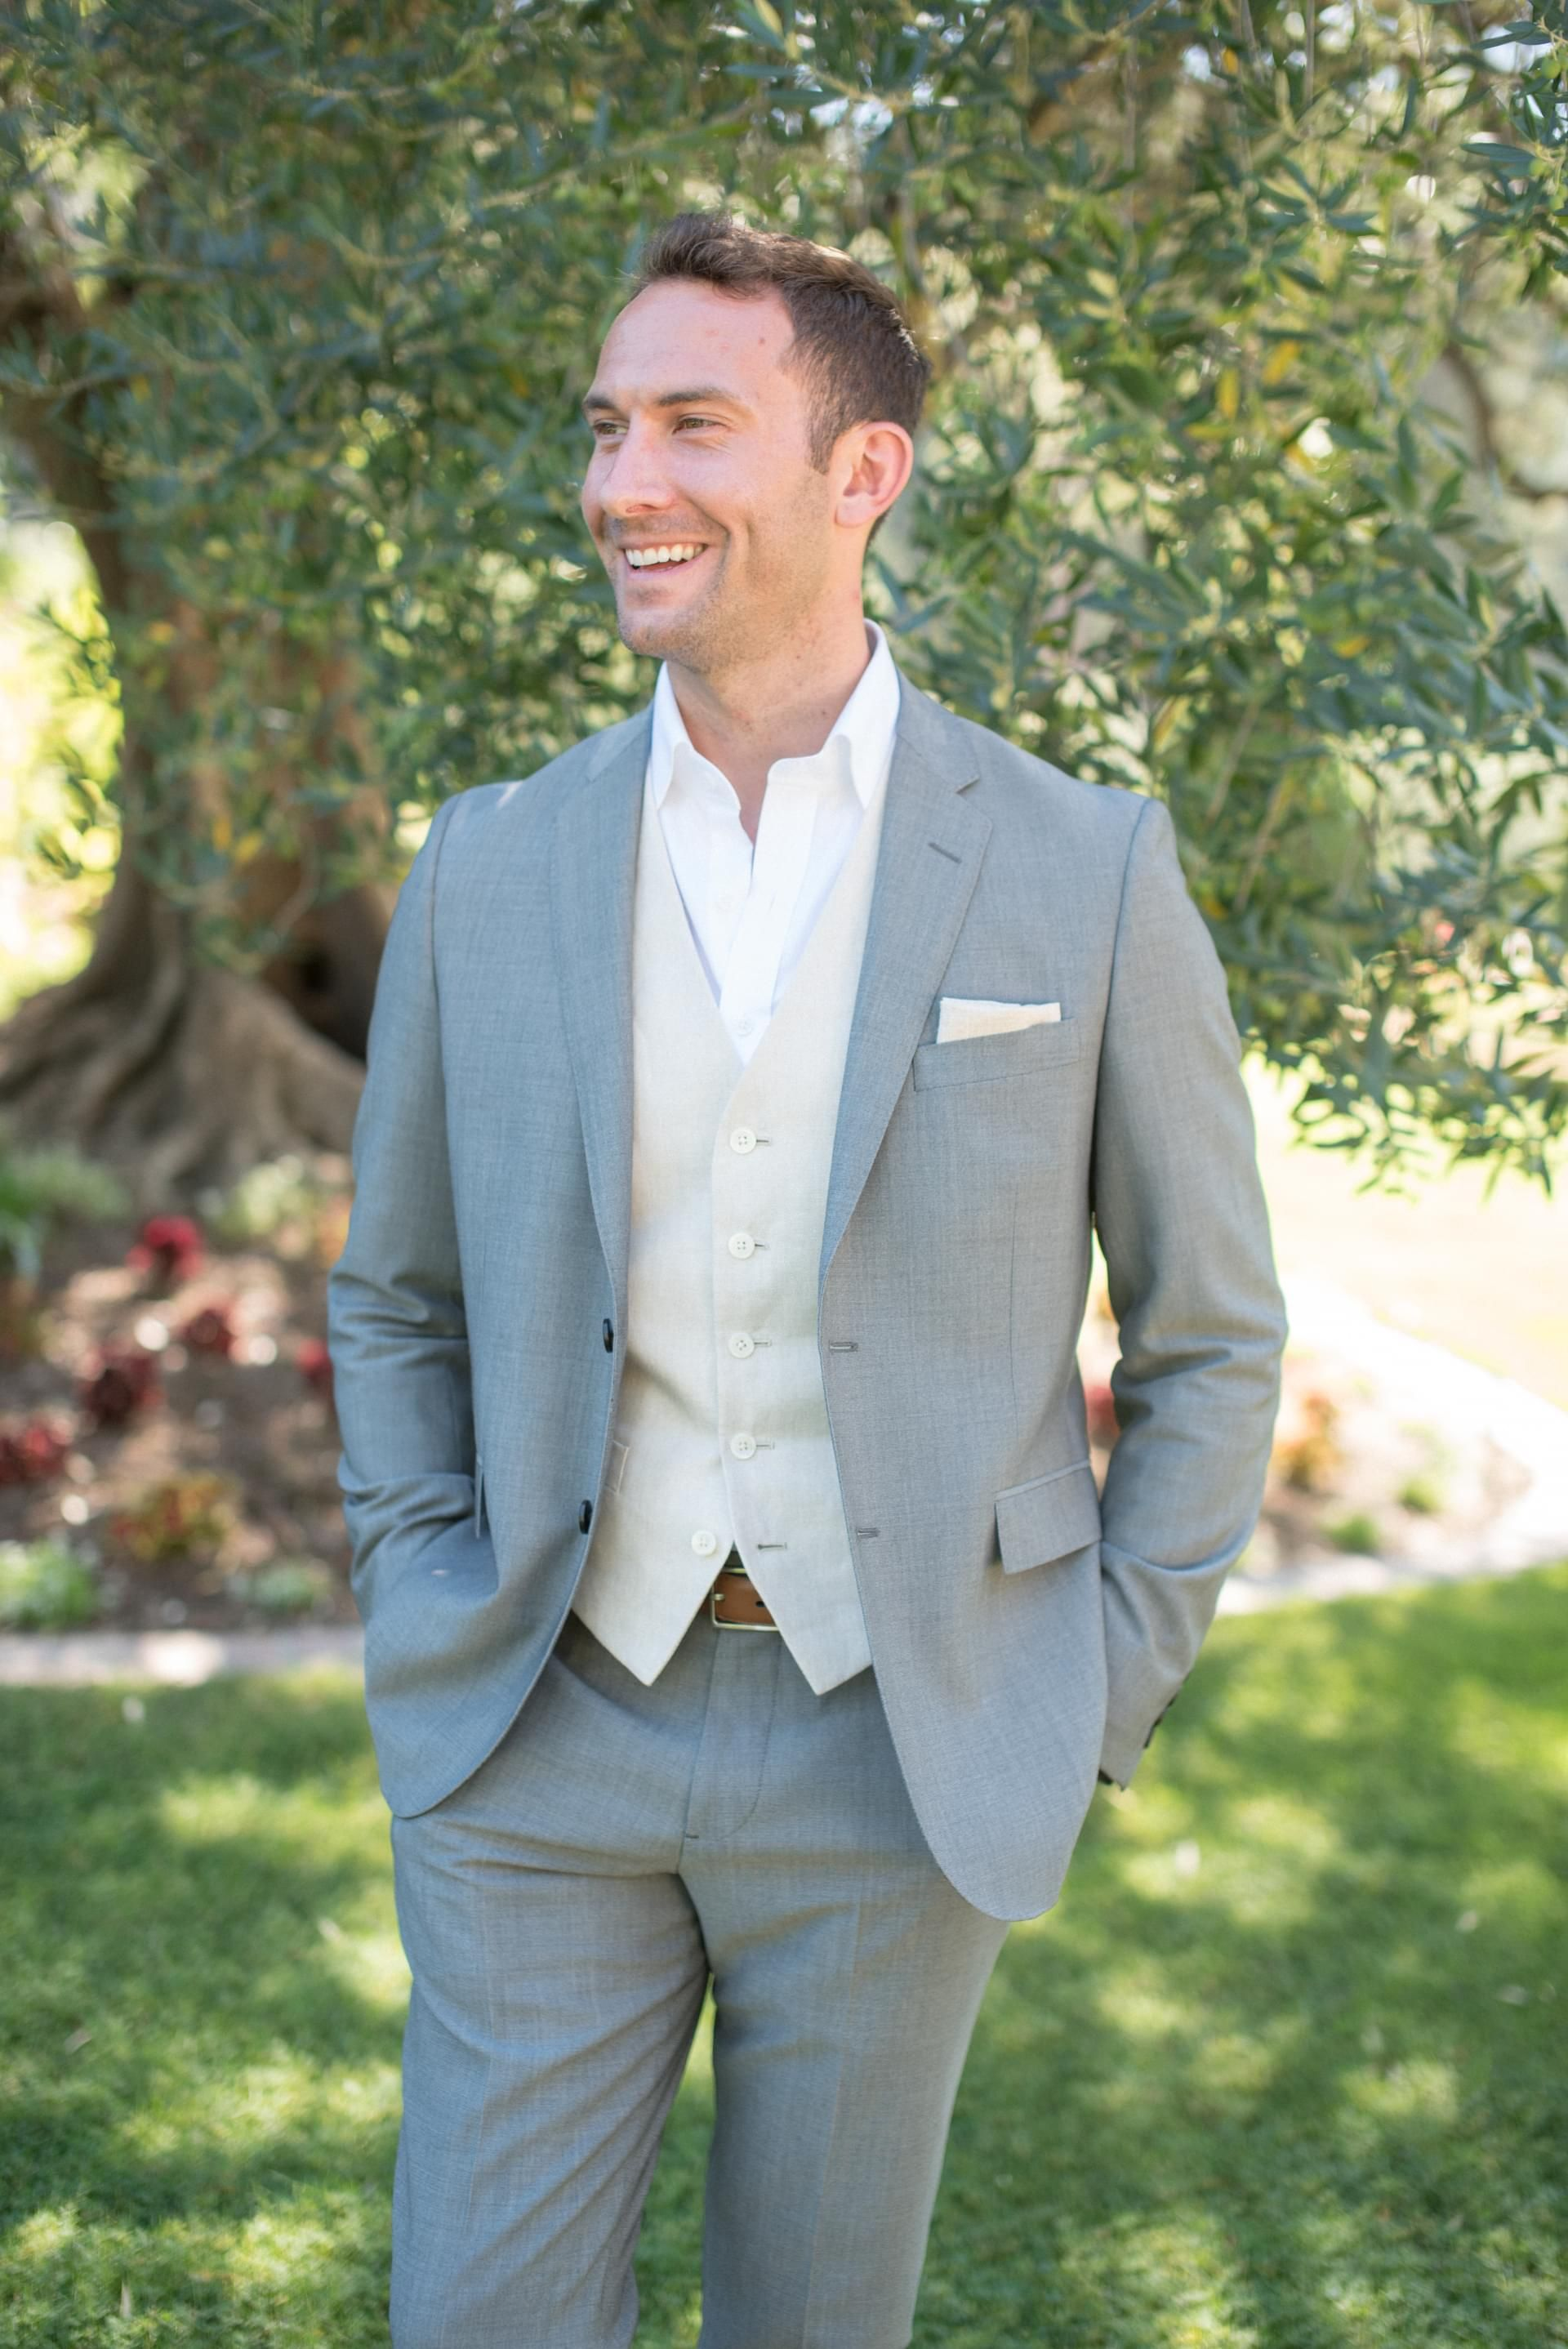 The Smarter Way to Wed | Pinterest | White pocket square, Groom ...